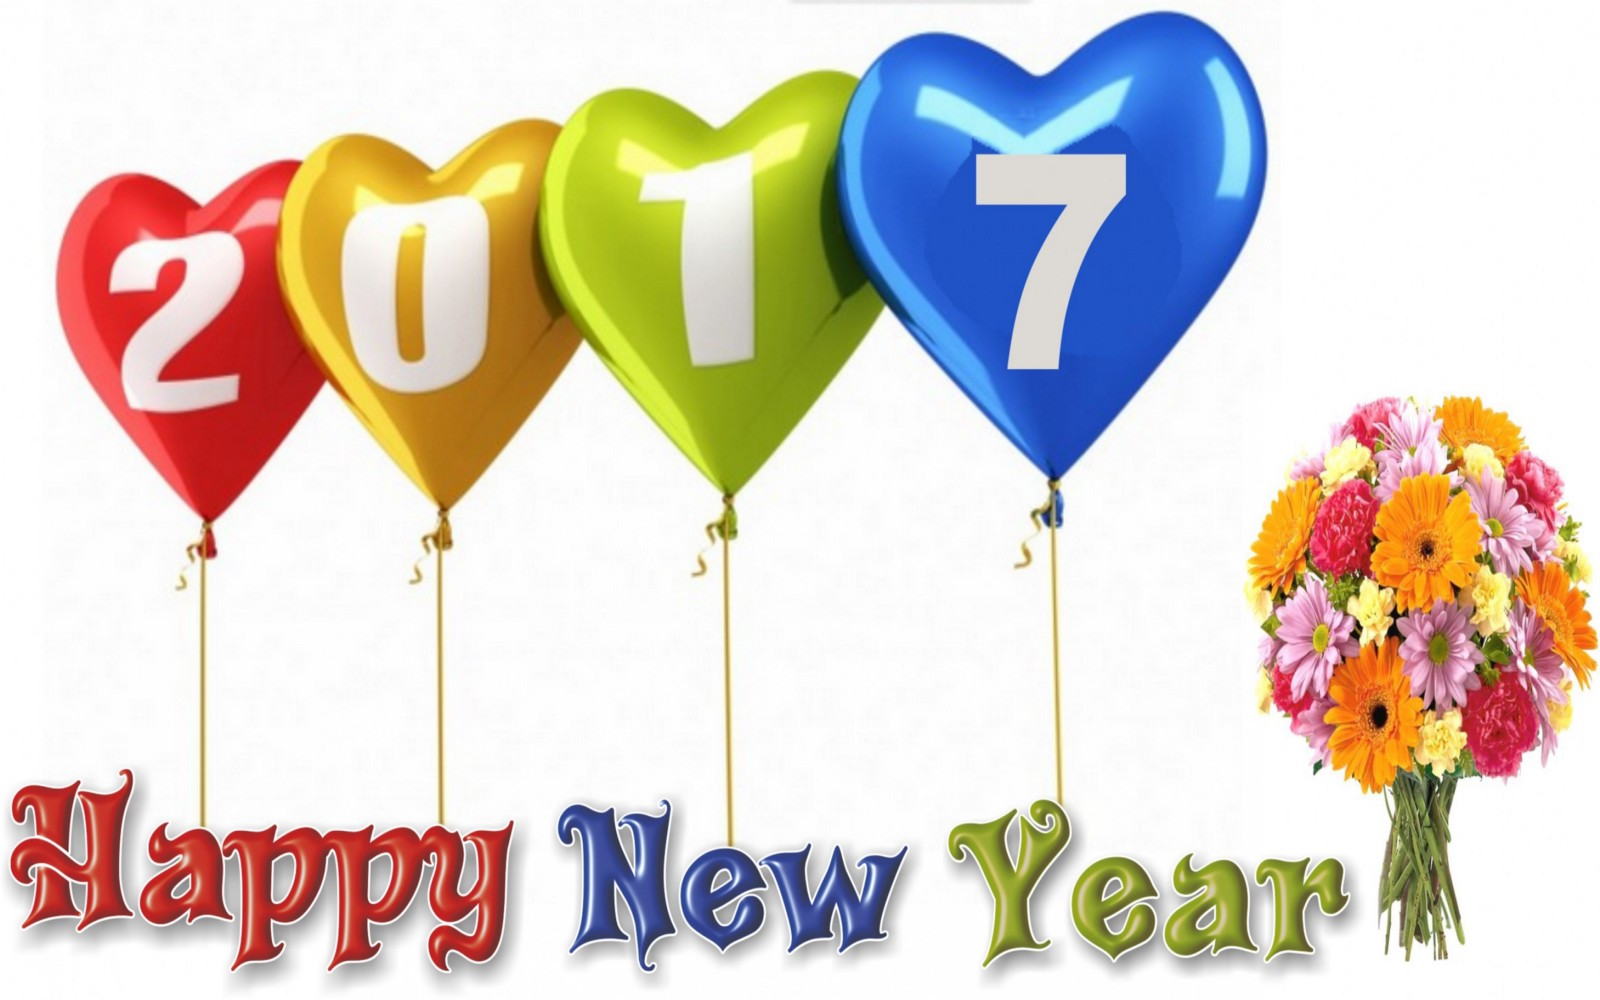 You Can Download These Scraps From Internet For Free Of Cost. So Just  Select Right One As Well As Wish Your Loved Ones For Happy New Year Wishes.